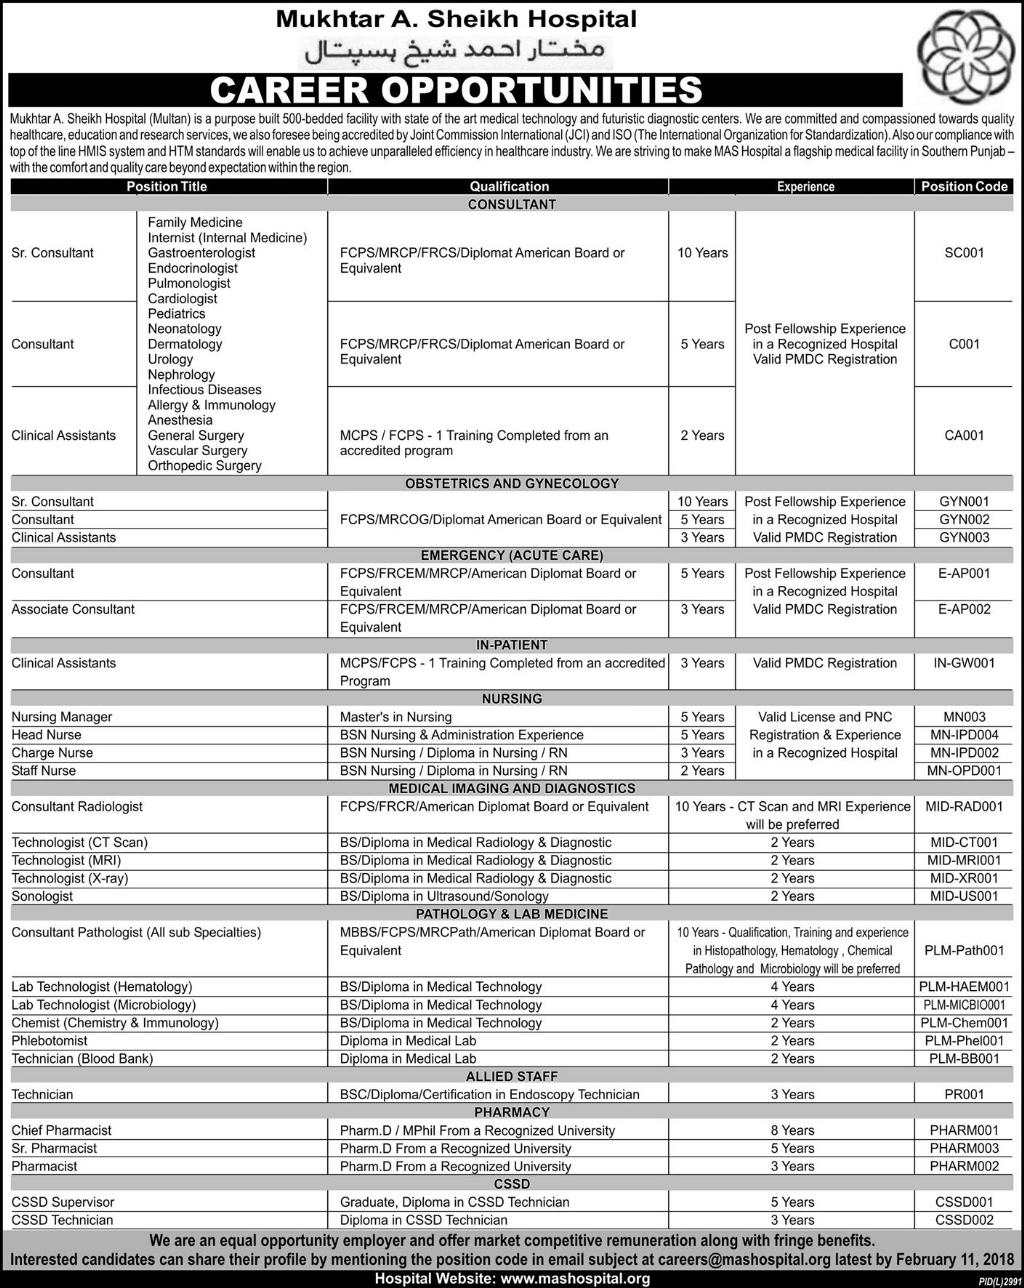 Mukhtar A Sheikh Hospital, Health and Medical Department Jobs 2018